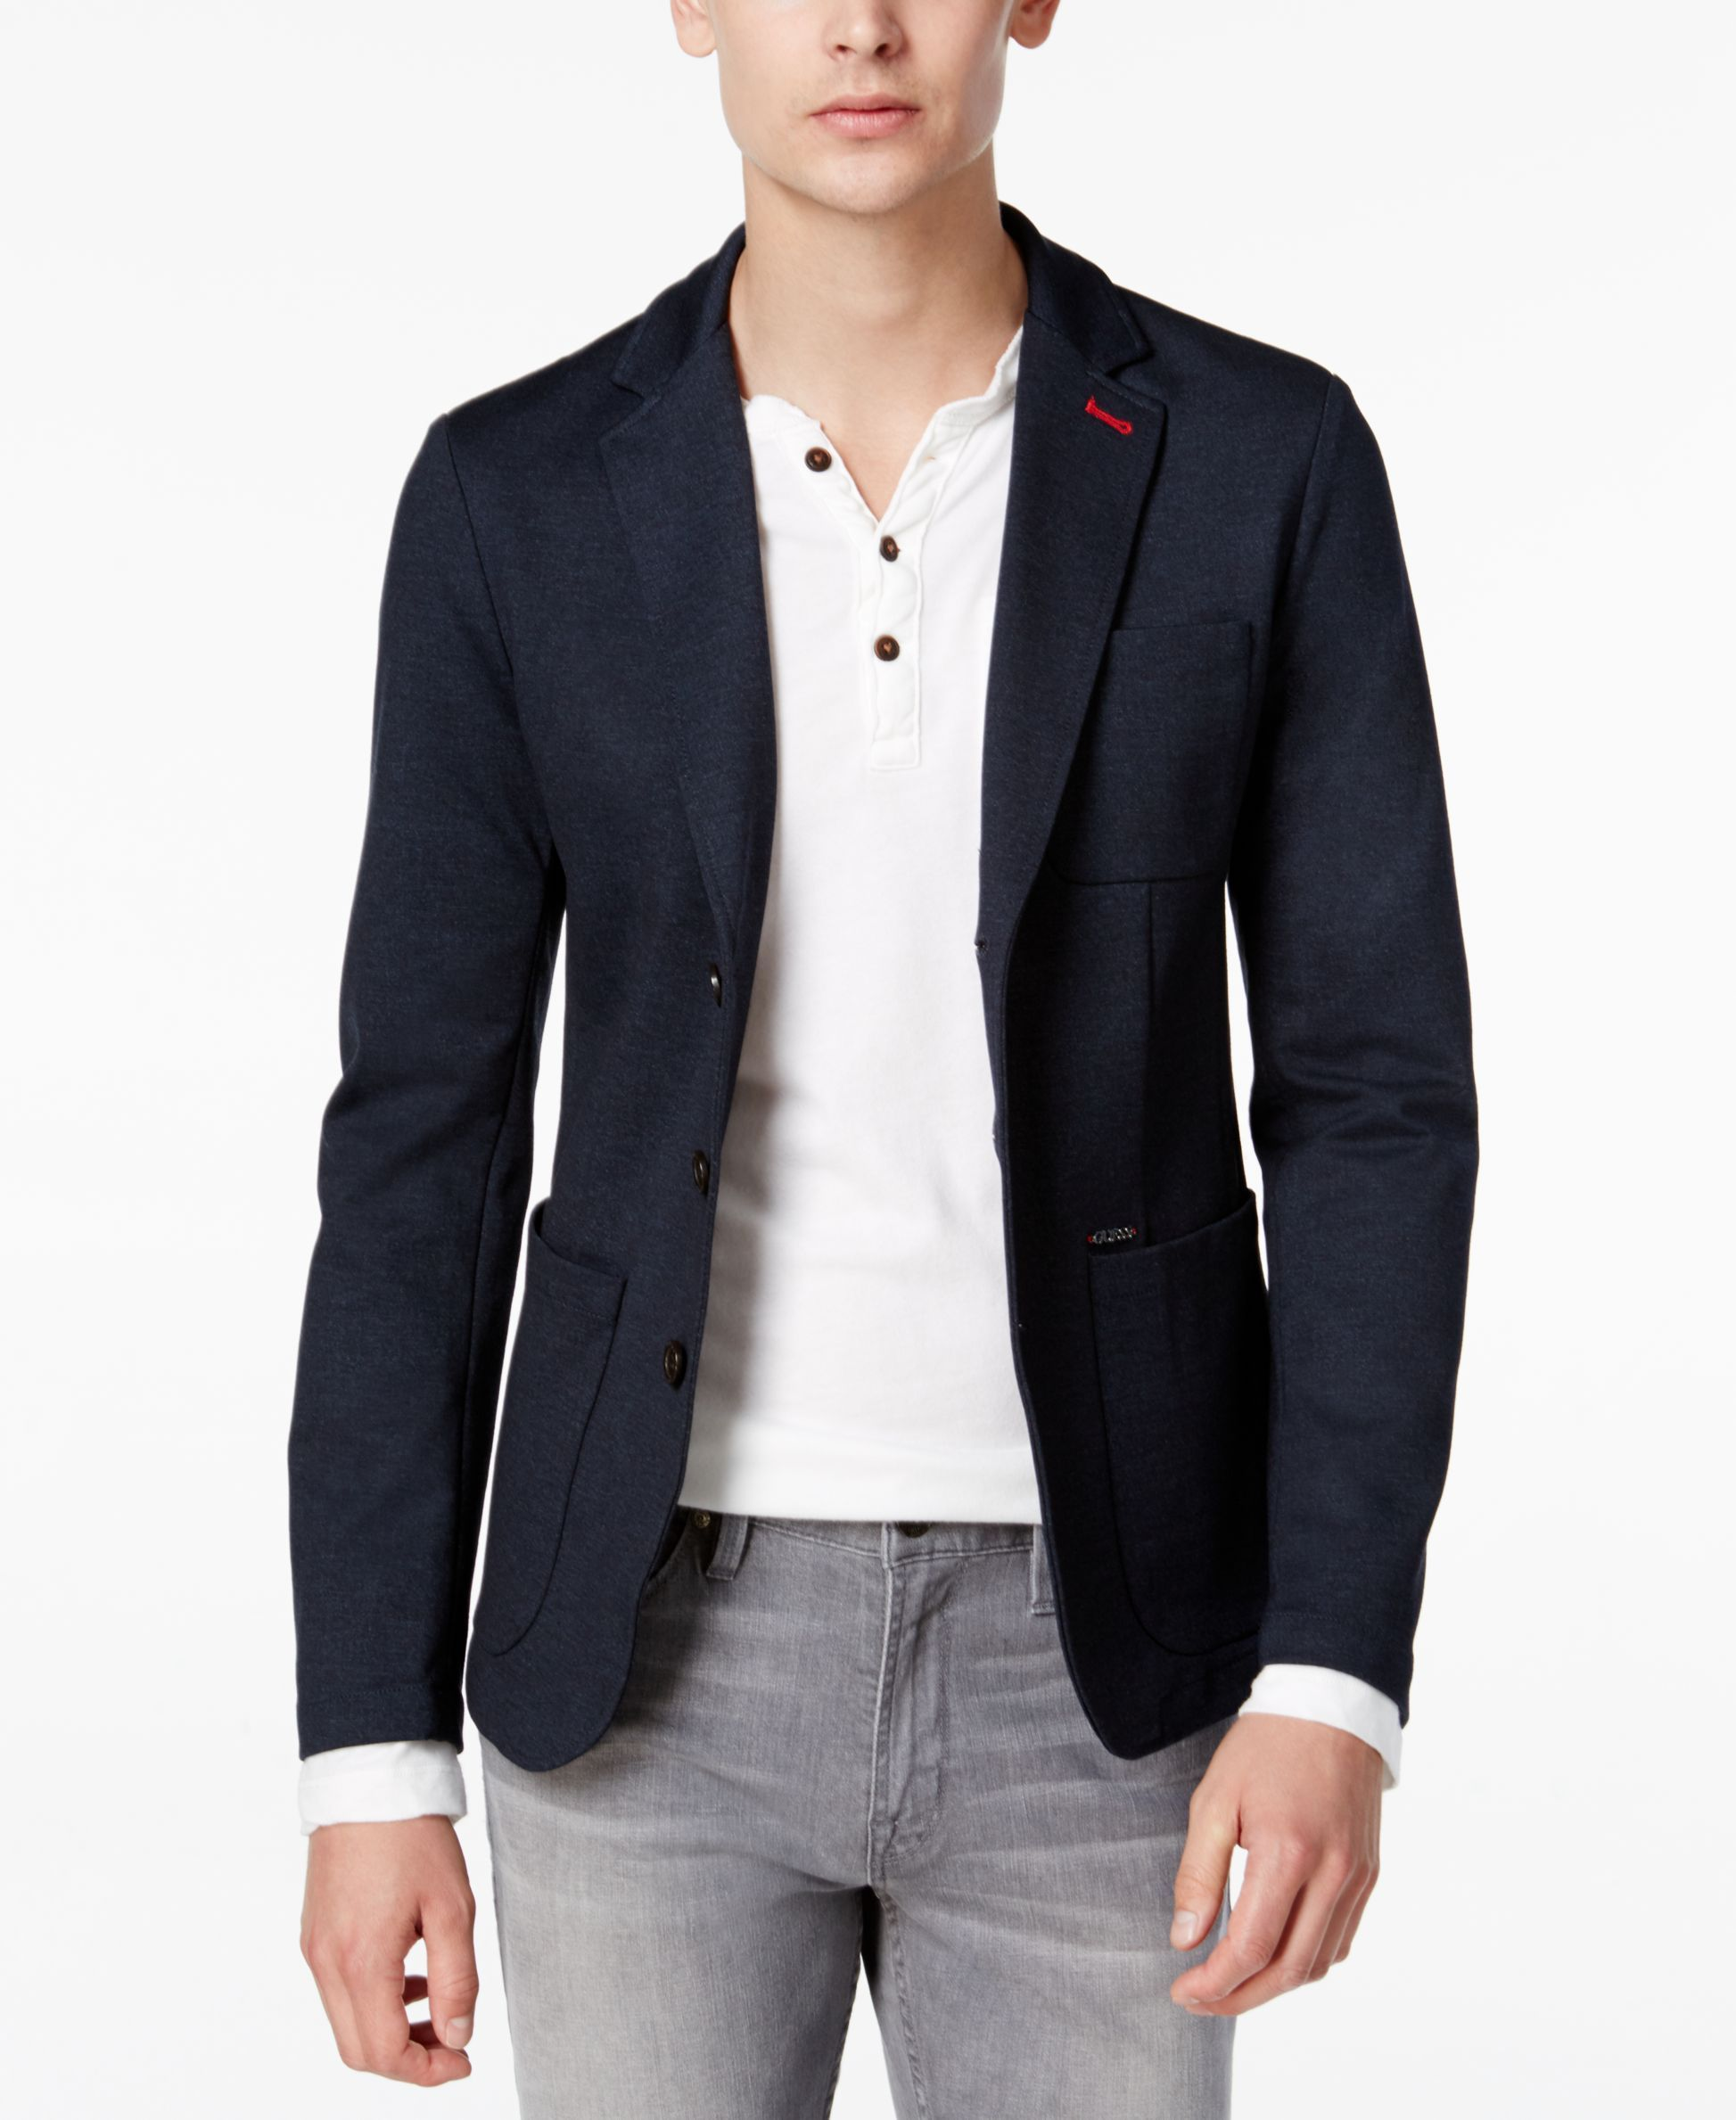 GUESS Men's Navy Blazer - Blazers & Sport Coats - Men - Macy's